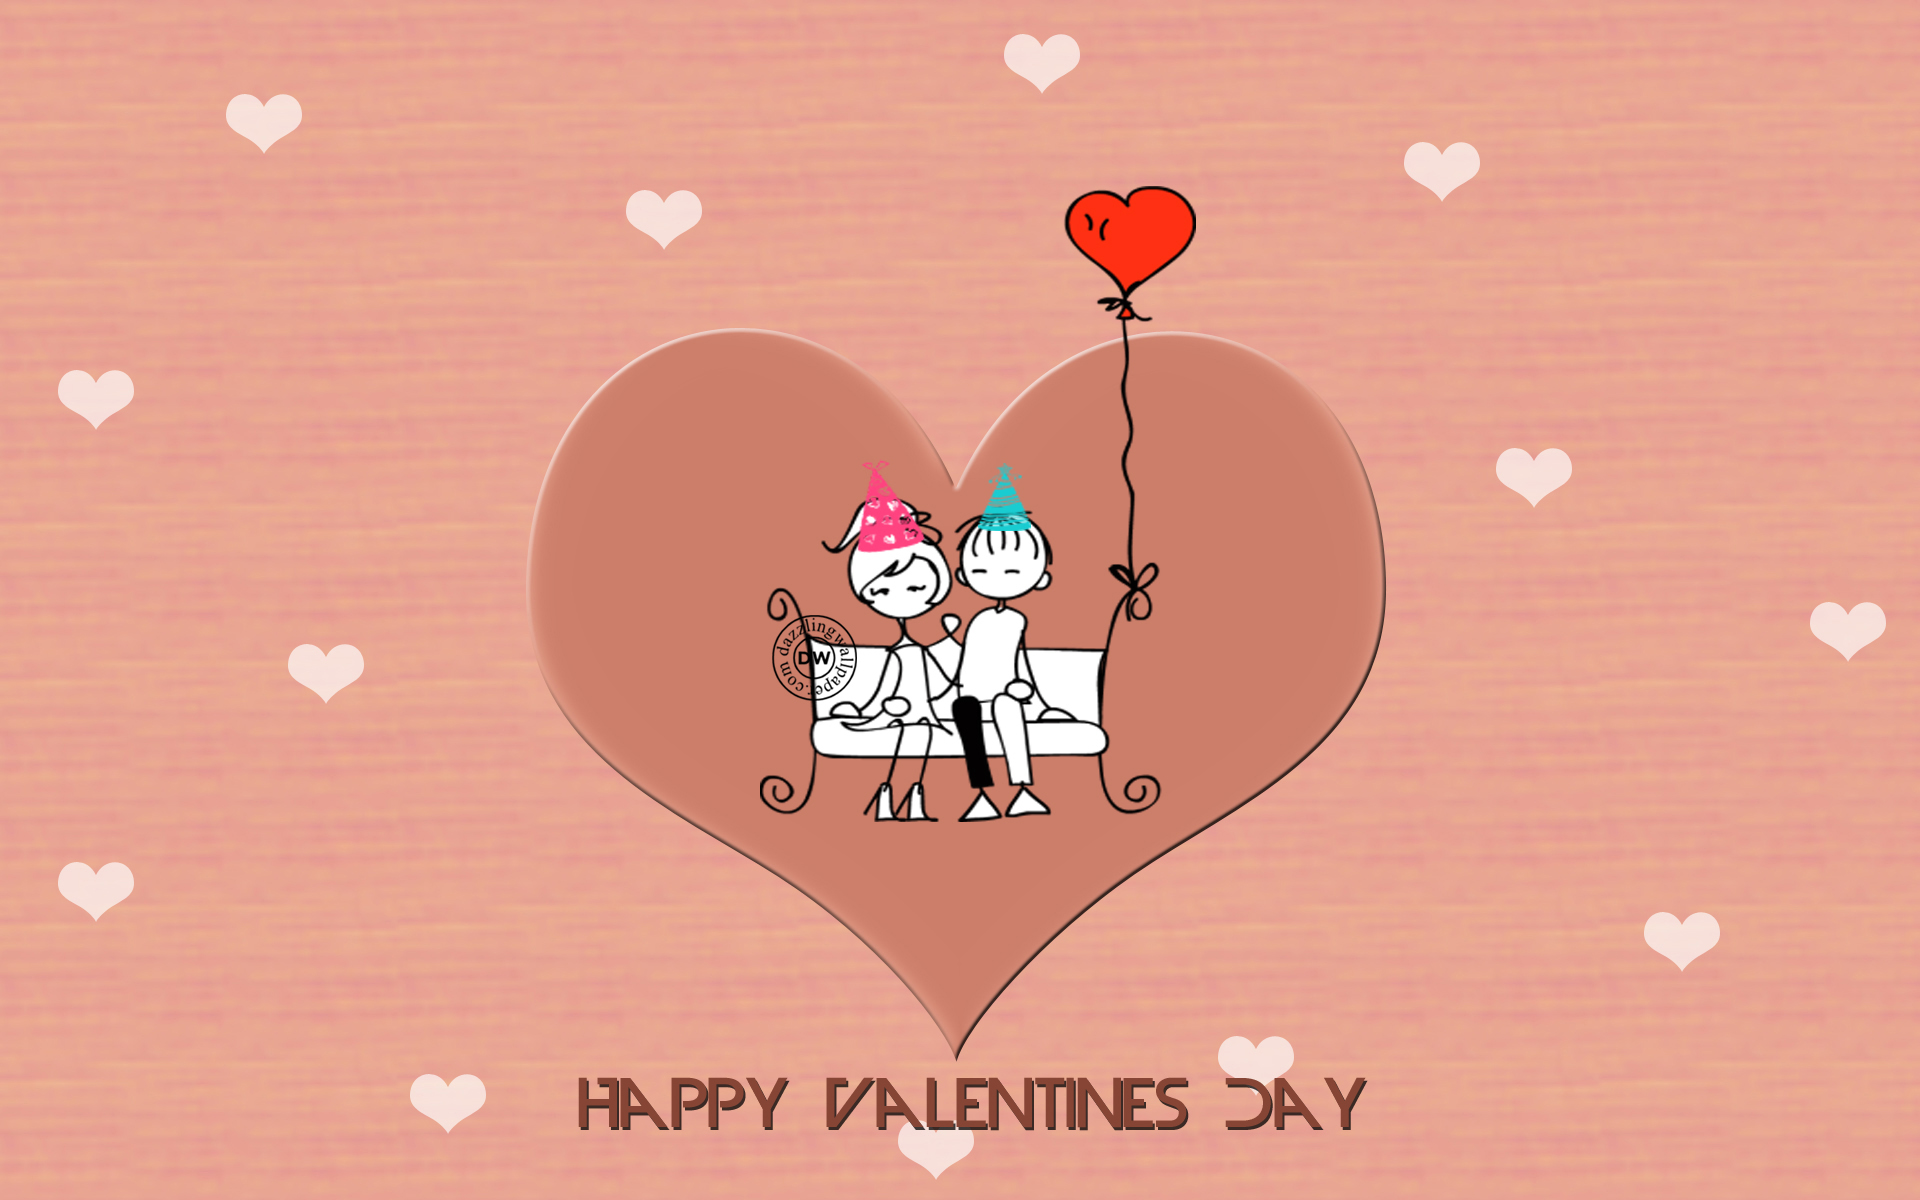 Happy Valentines Day Cute Wallpapers Valentines Day Wallpaper High Definition High Quality